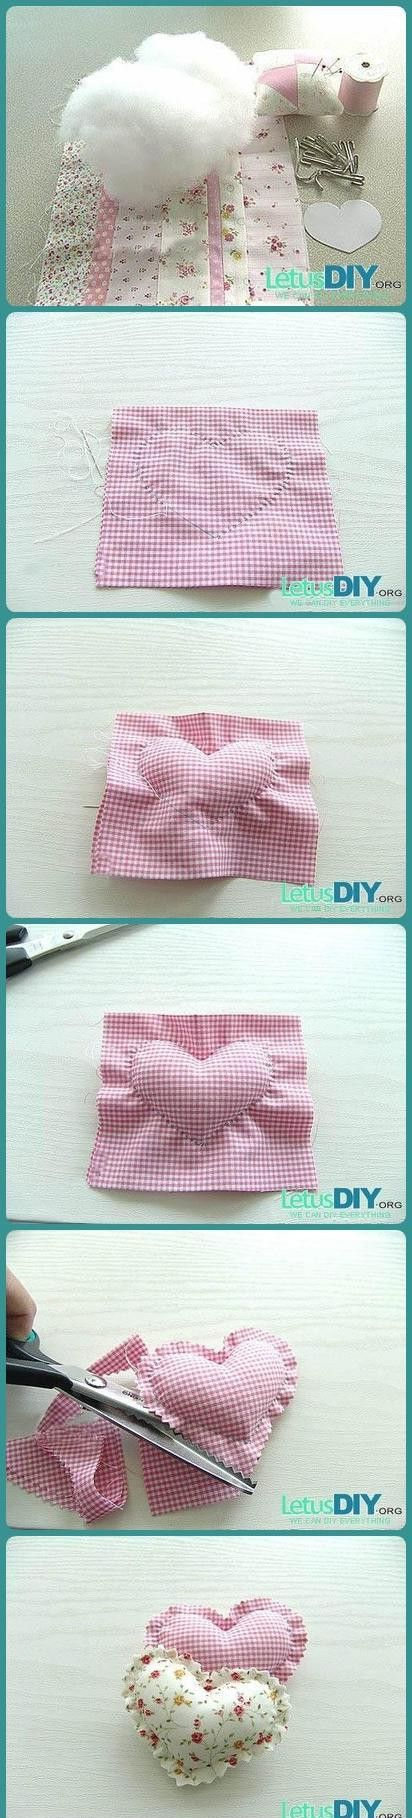 diy shabby hearts - picture tutorial